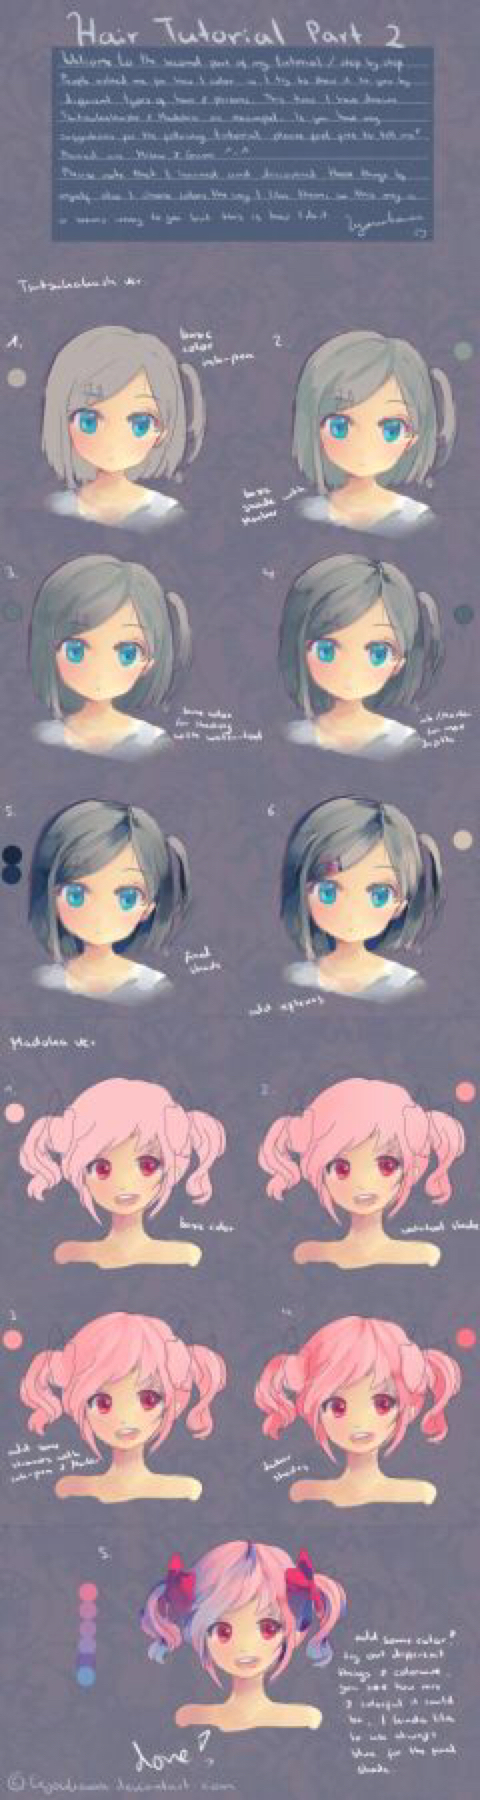 Hair Tutorial Part 2 by KyouKaraa on DeviantArt (With